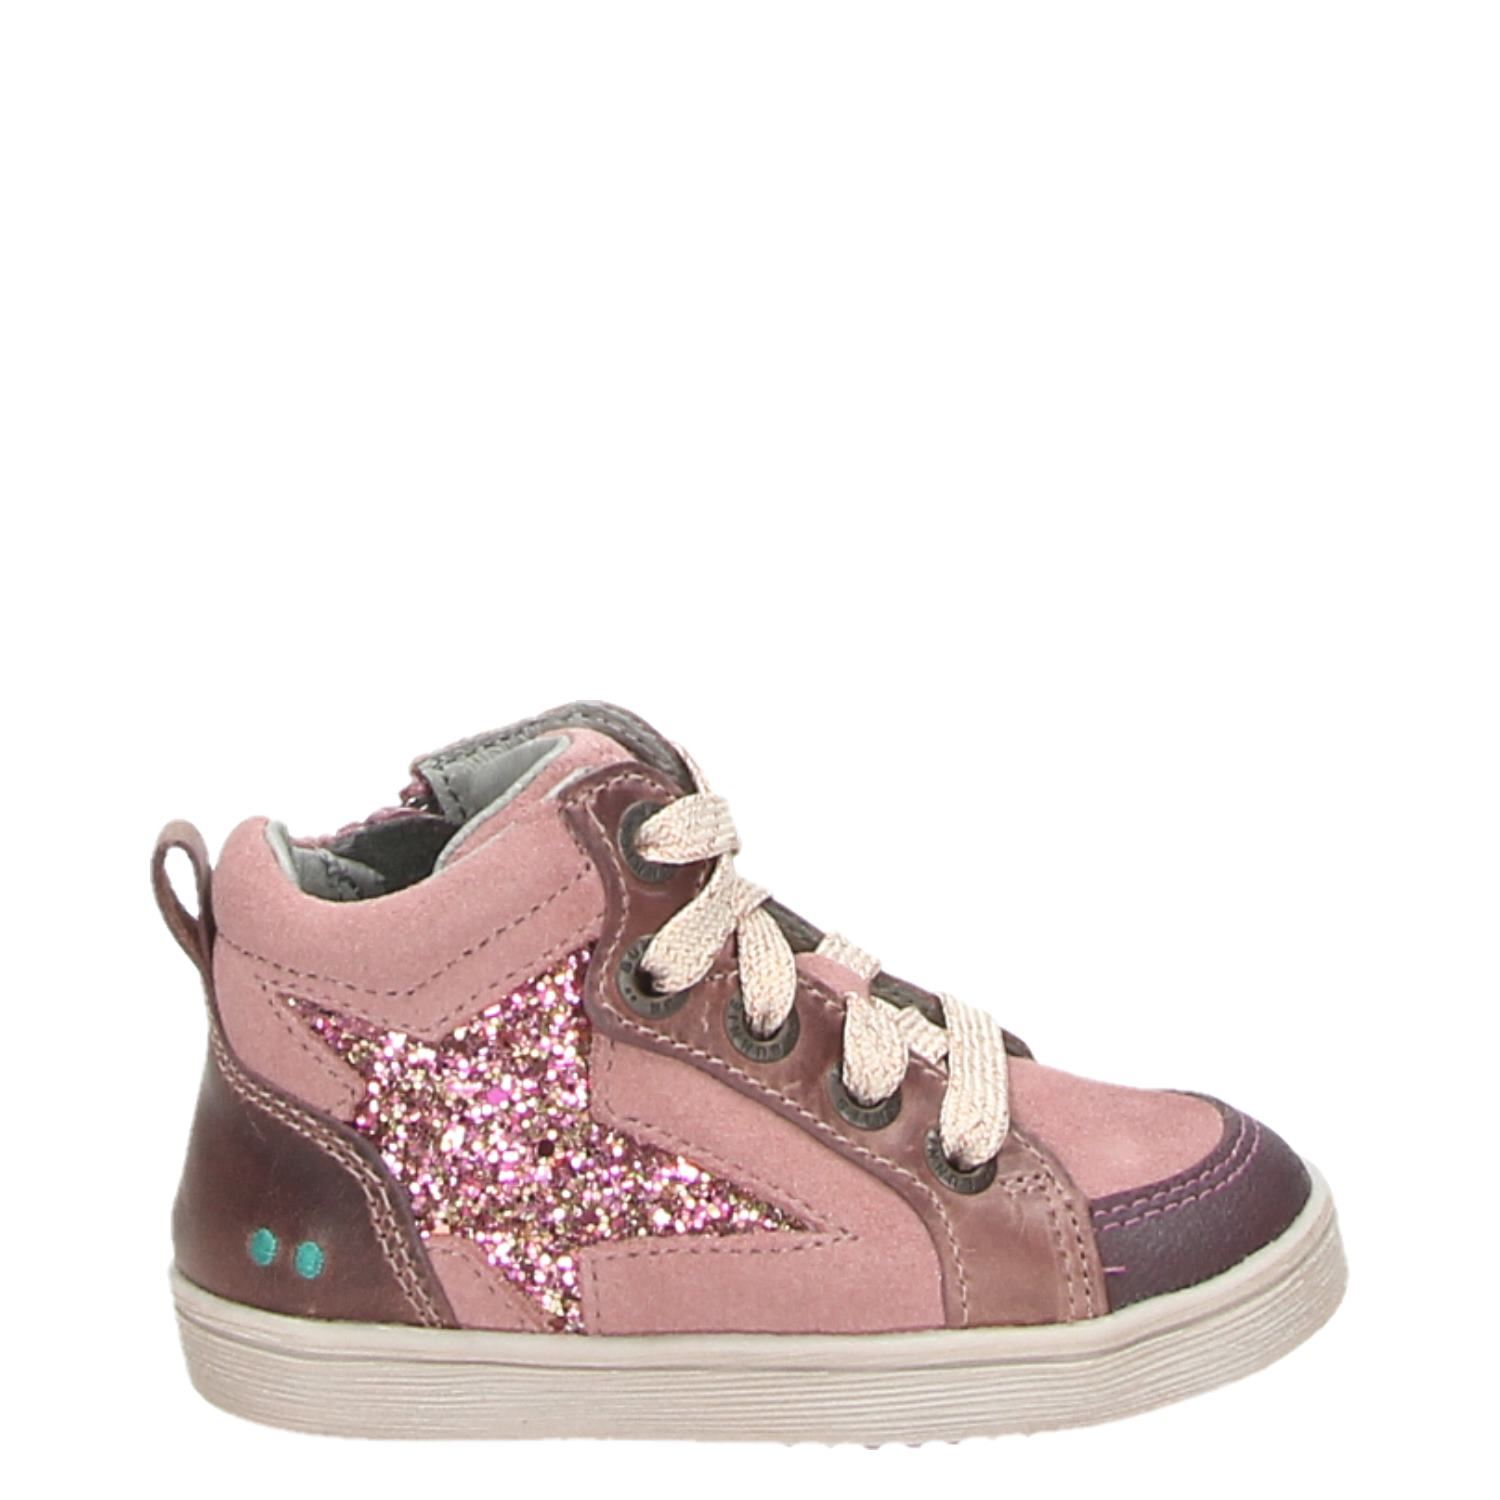 Chaussures De Lapins Roses SjbreBE4